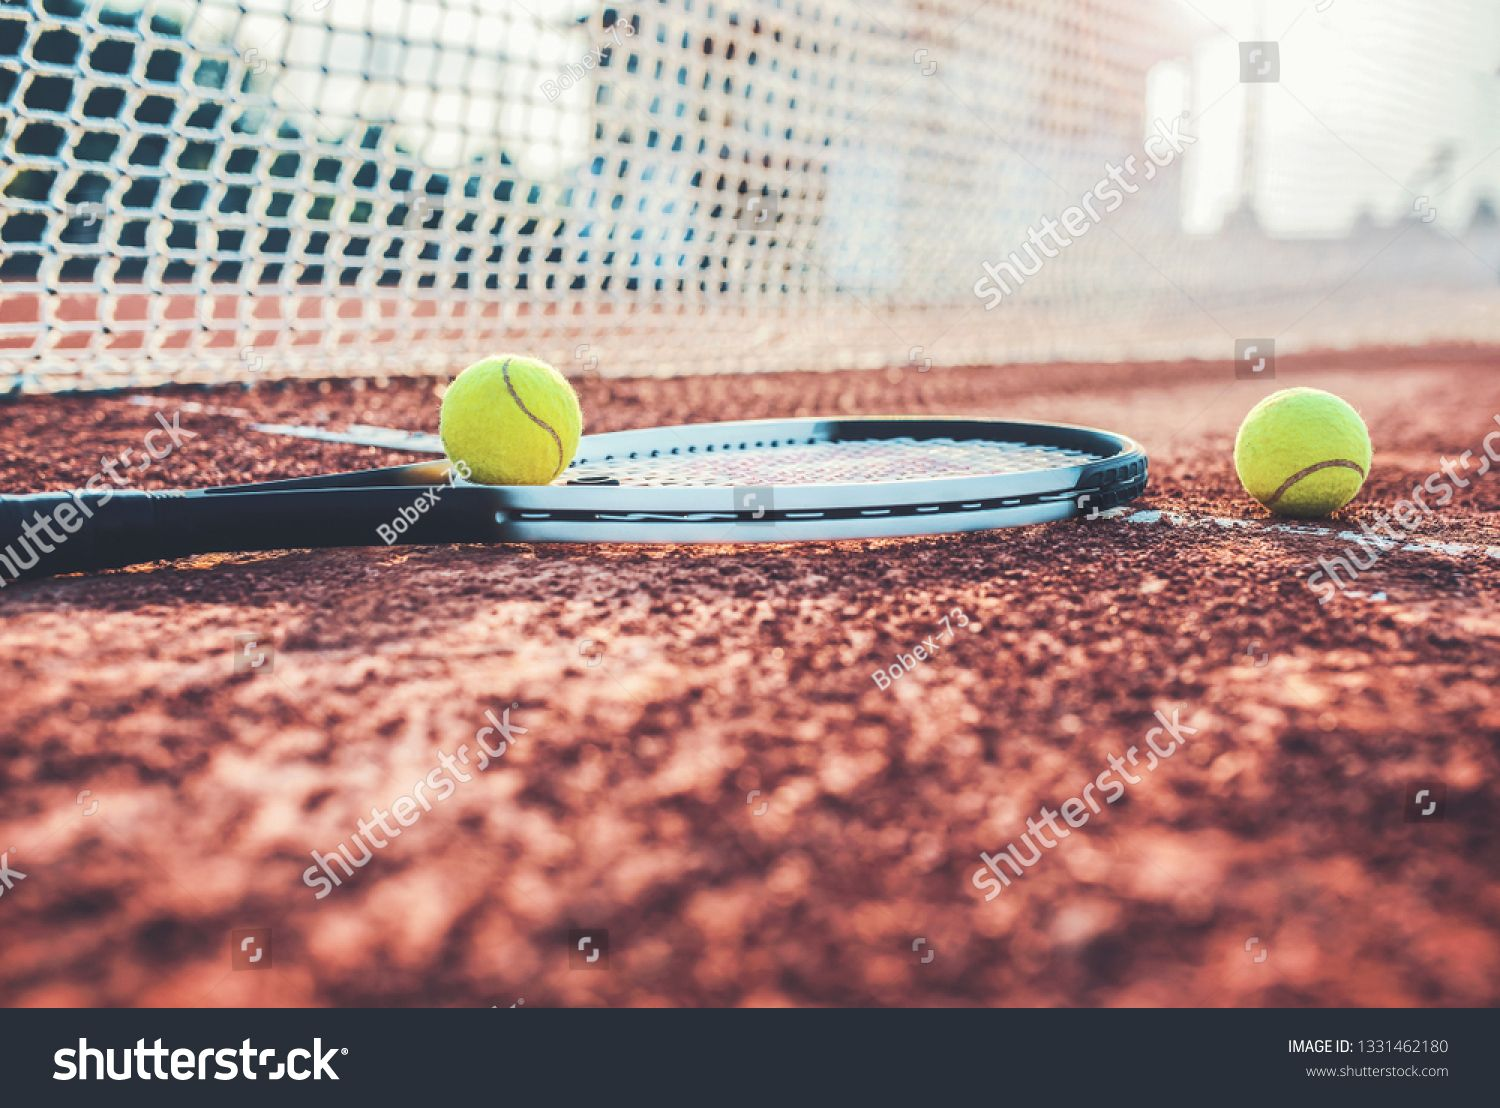 Tennis Game Tennis Ball With Racket On The Tennis Court Sport Recreation Concept Ad Sponsored Ball Racket Tennis Game Tennis Tennis Games Rackets